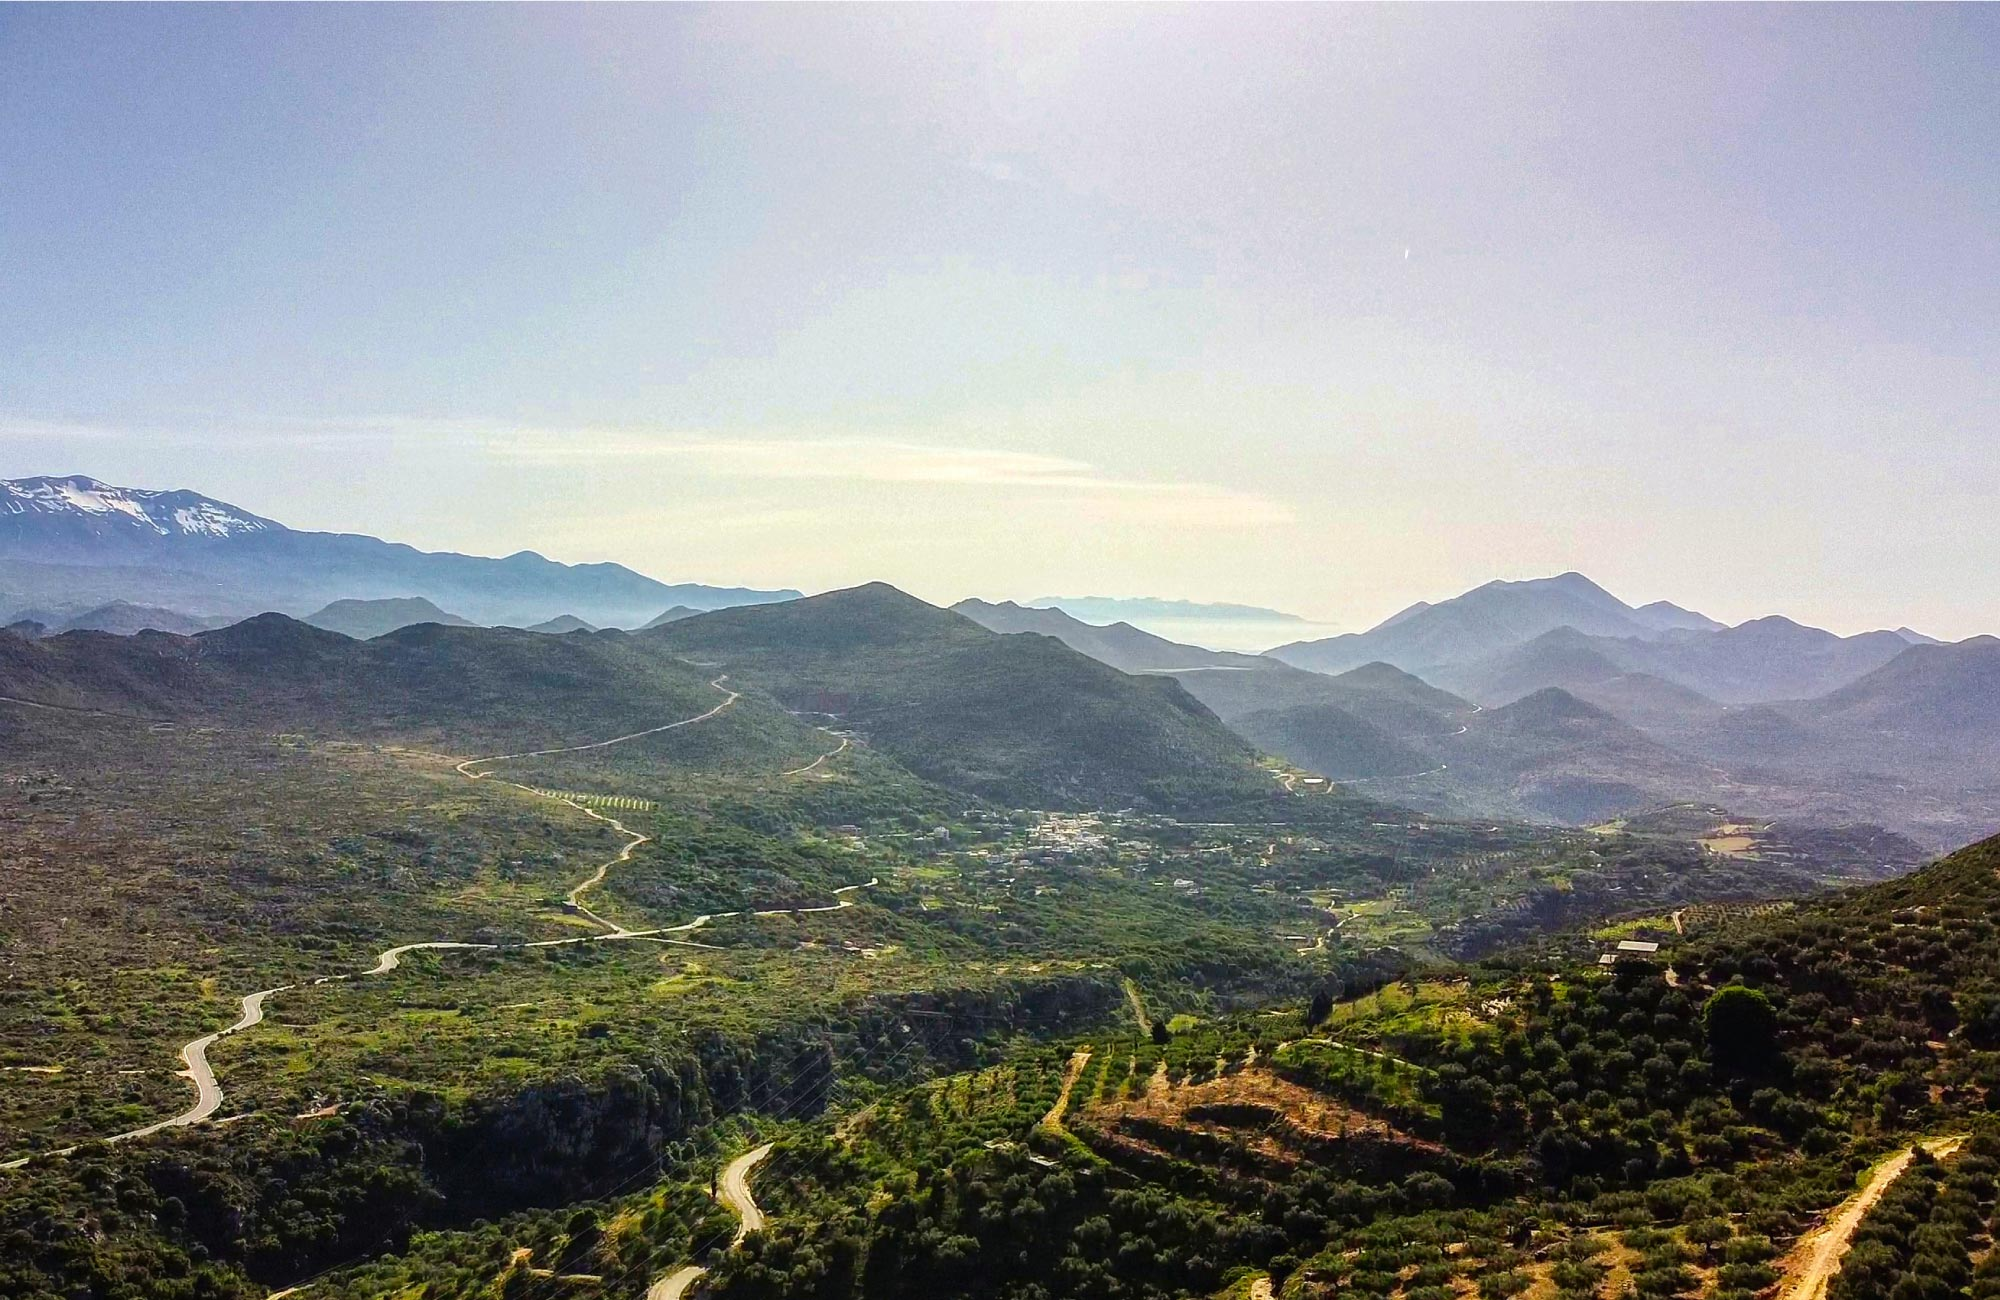 The green hills and mountains of Crete.